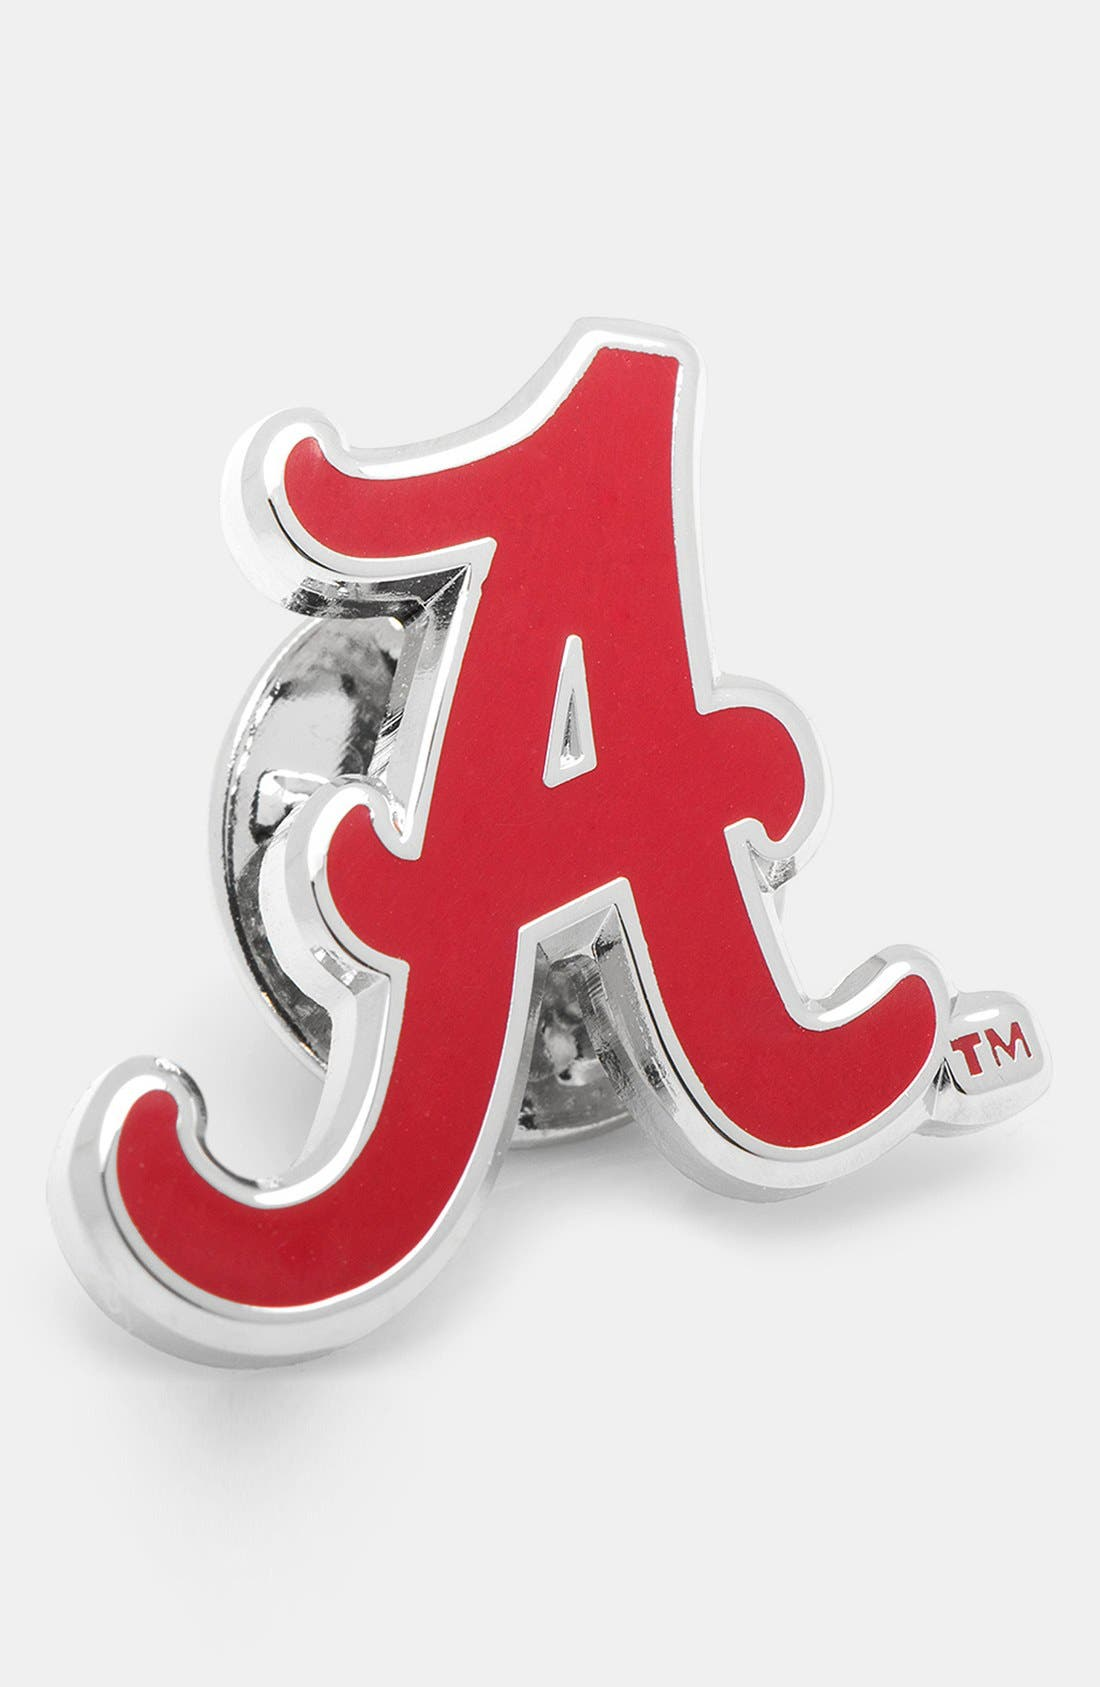 Alternate Image 1 Selected - Cufflinks, Inc. 'Alabama Crimson Tide' Lapel Pin